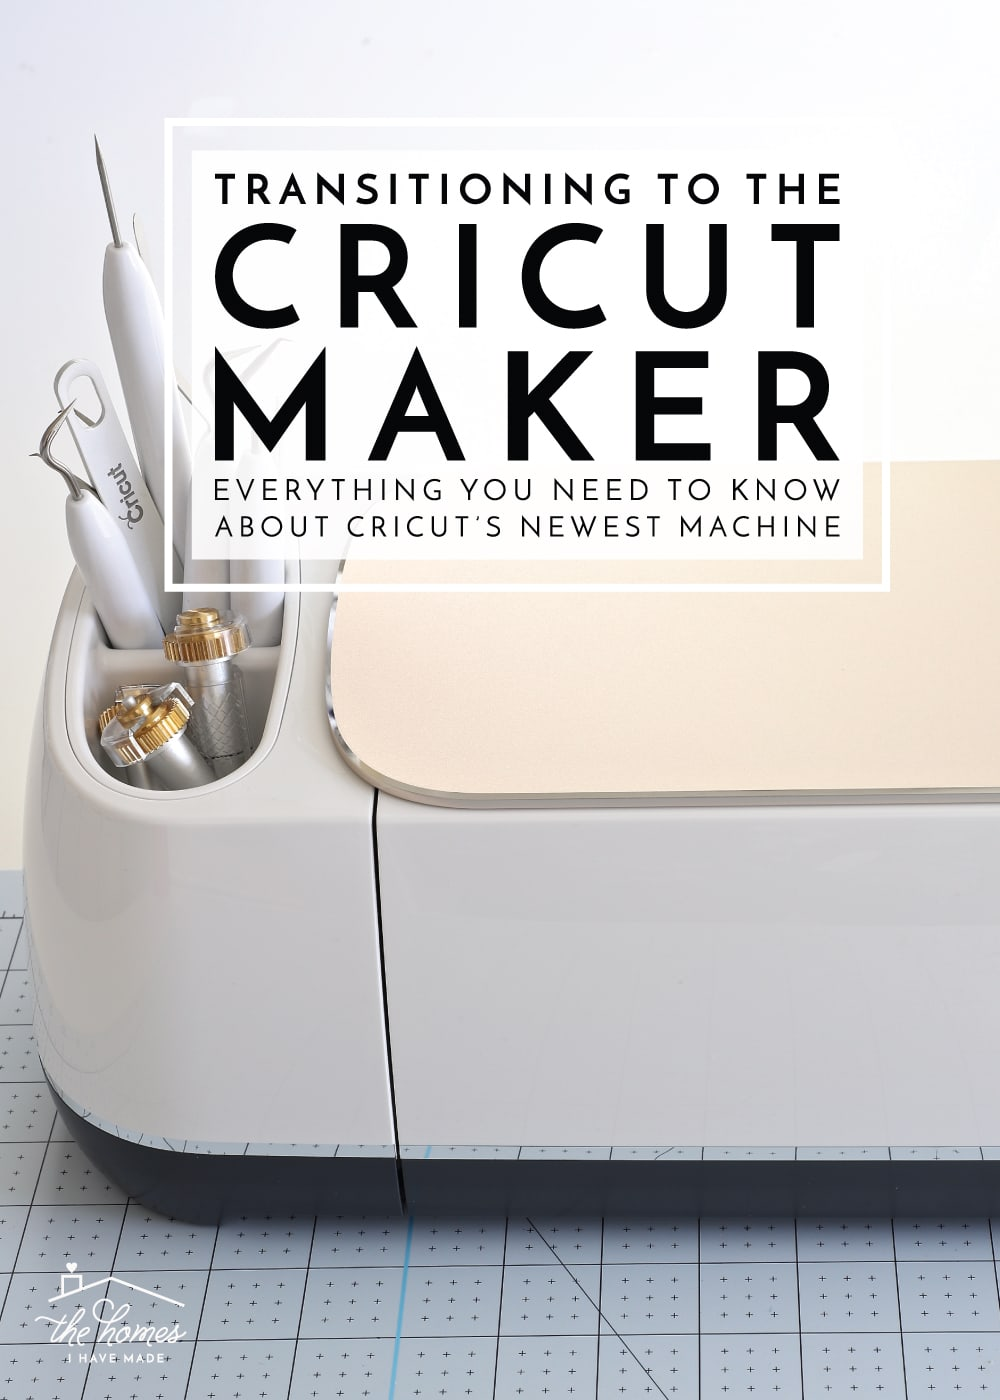 Are you wondering if it's worth upgrading your Cricut Explore Air to the Cricut Maker? I'm breaking it all down so you can make the best decision for your craft needs!